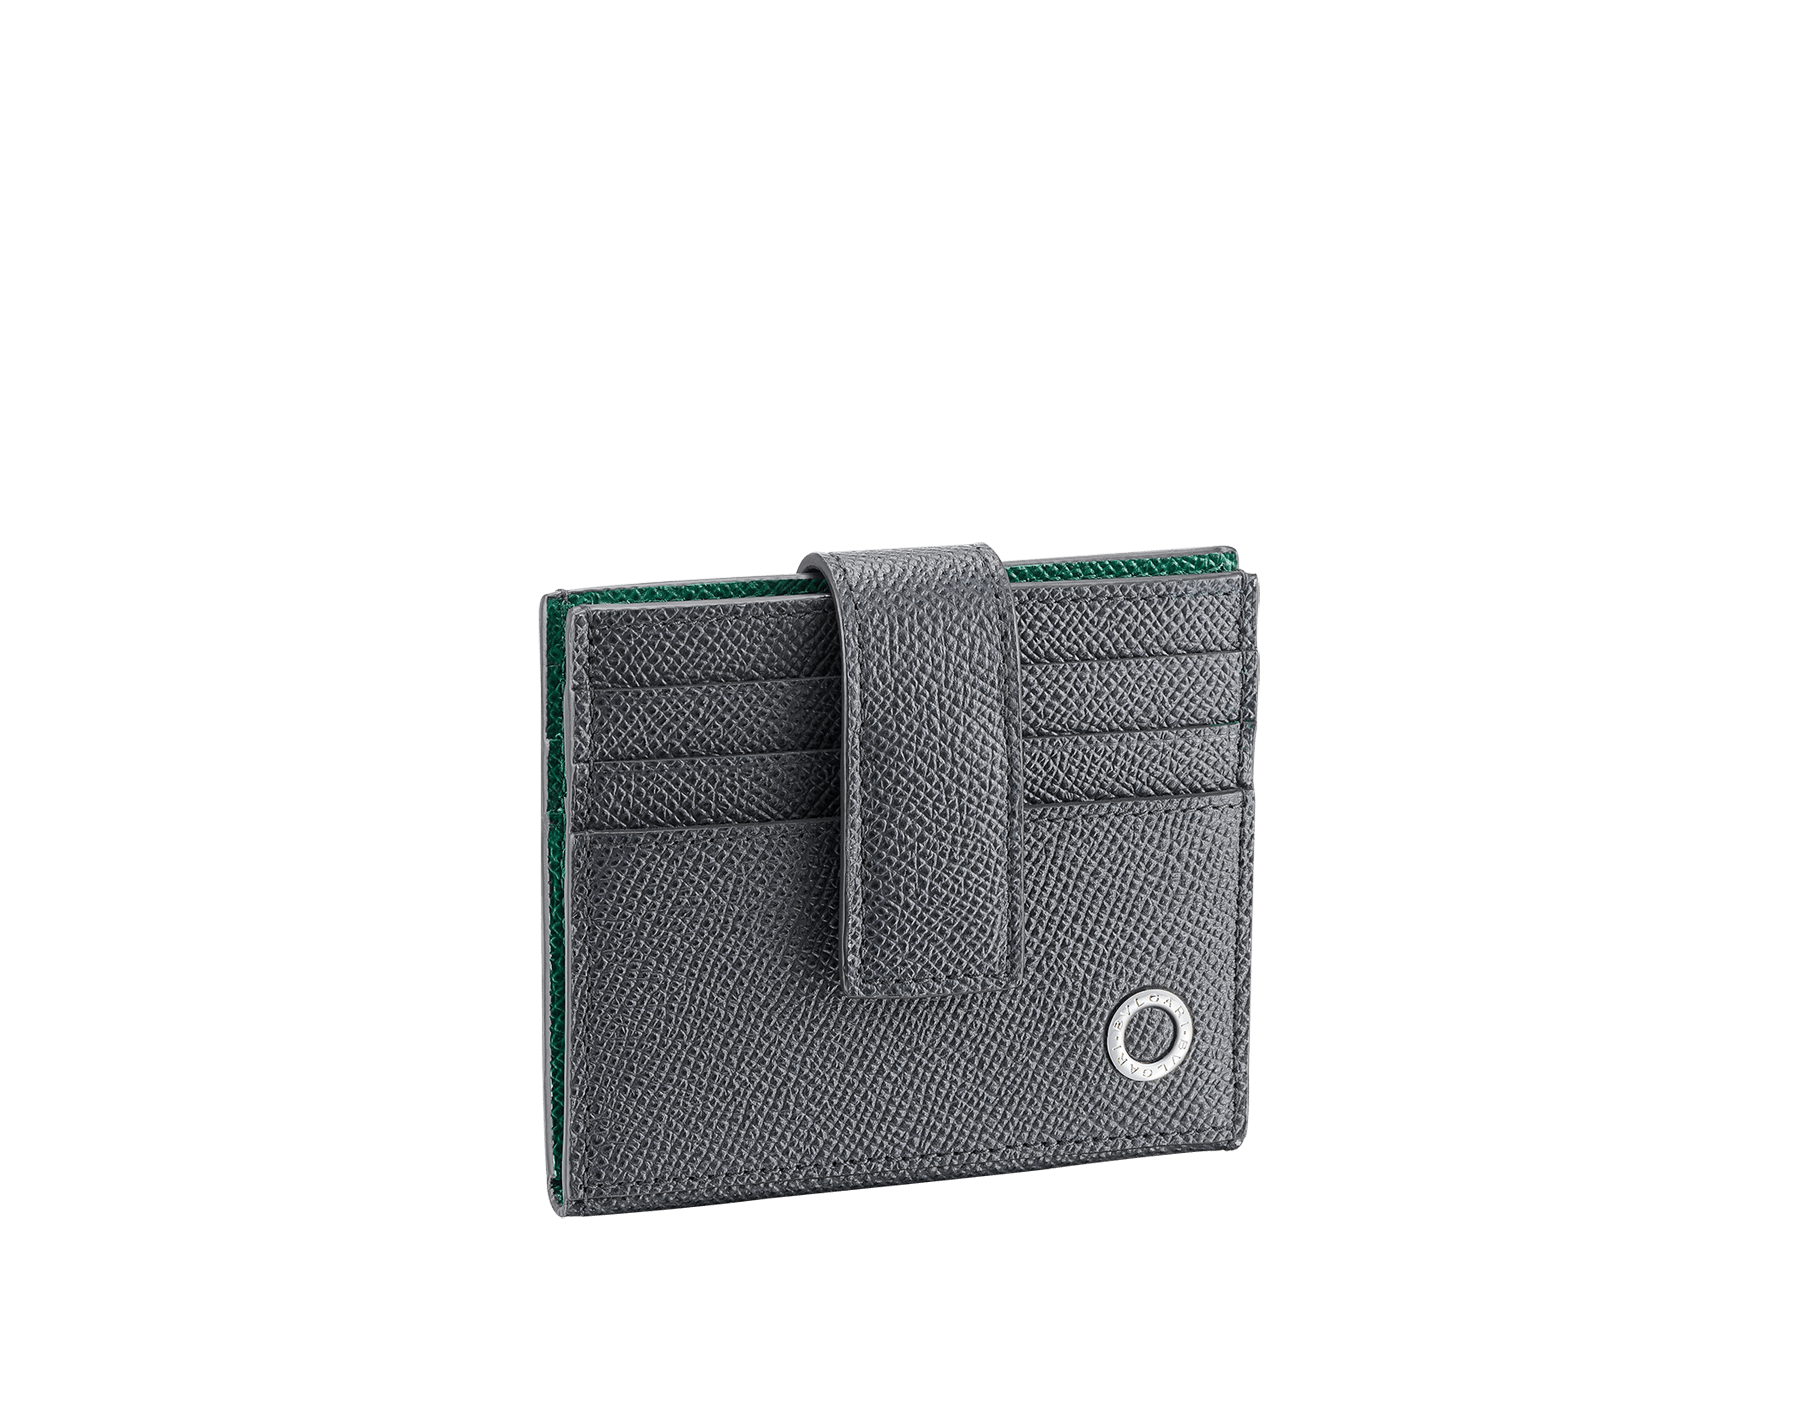 BVLGARI BVLGARI folded credit card holder in black grain calf leather. Iconic logo decoration in palladium-plated brass. BBM-12CCHOLDER image 1